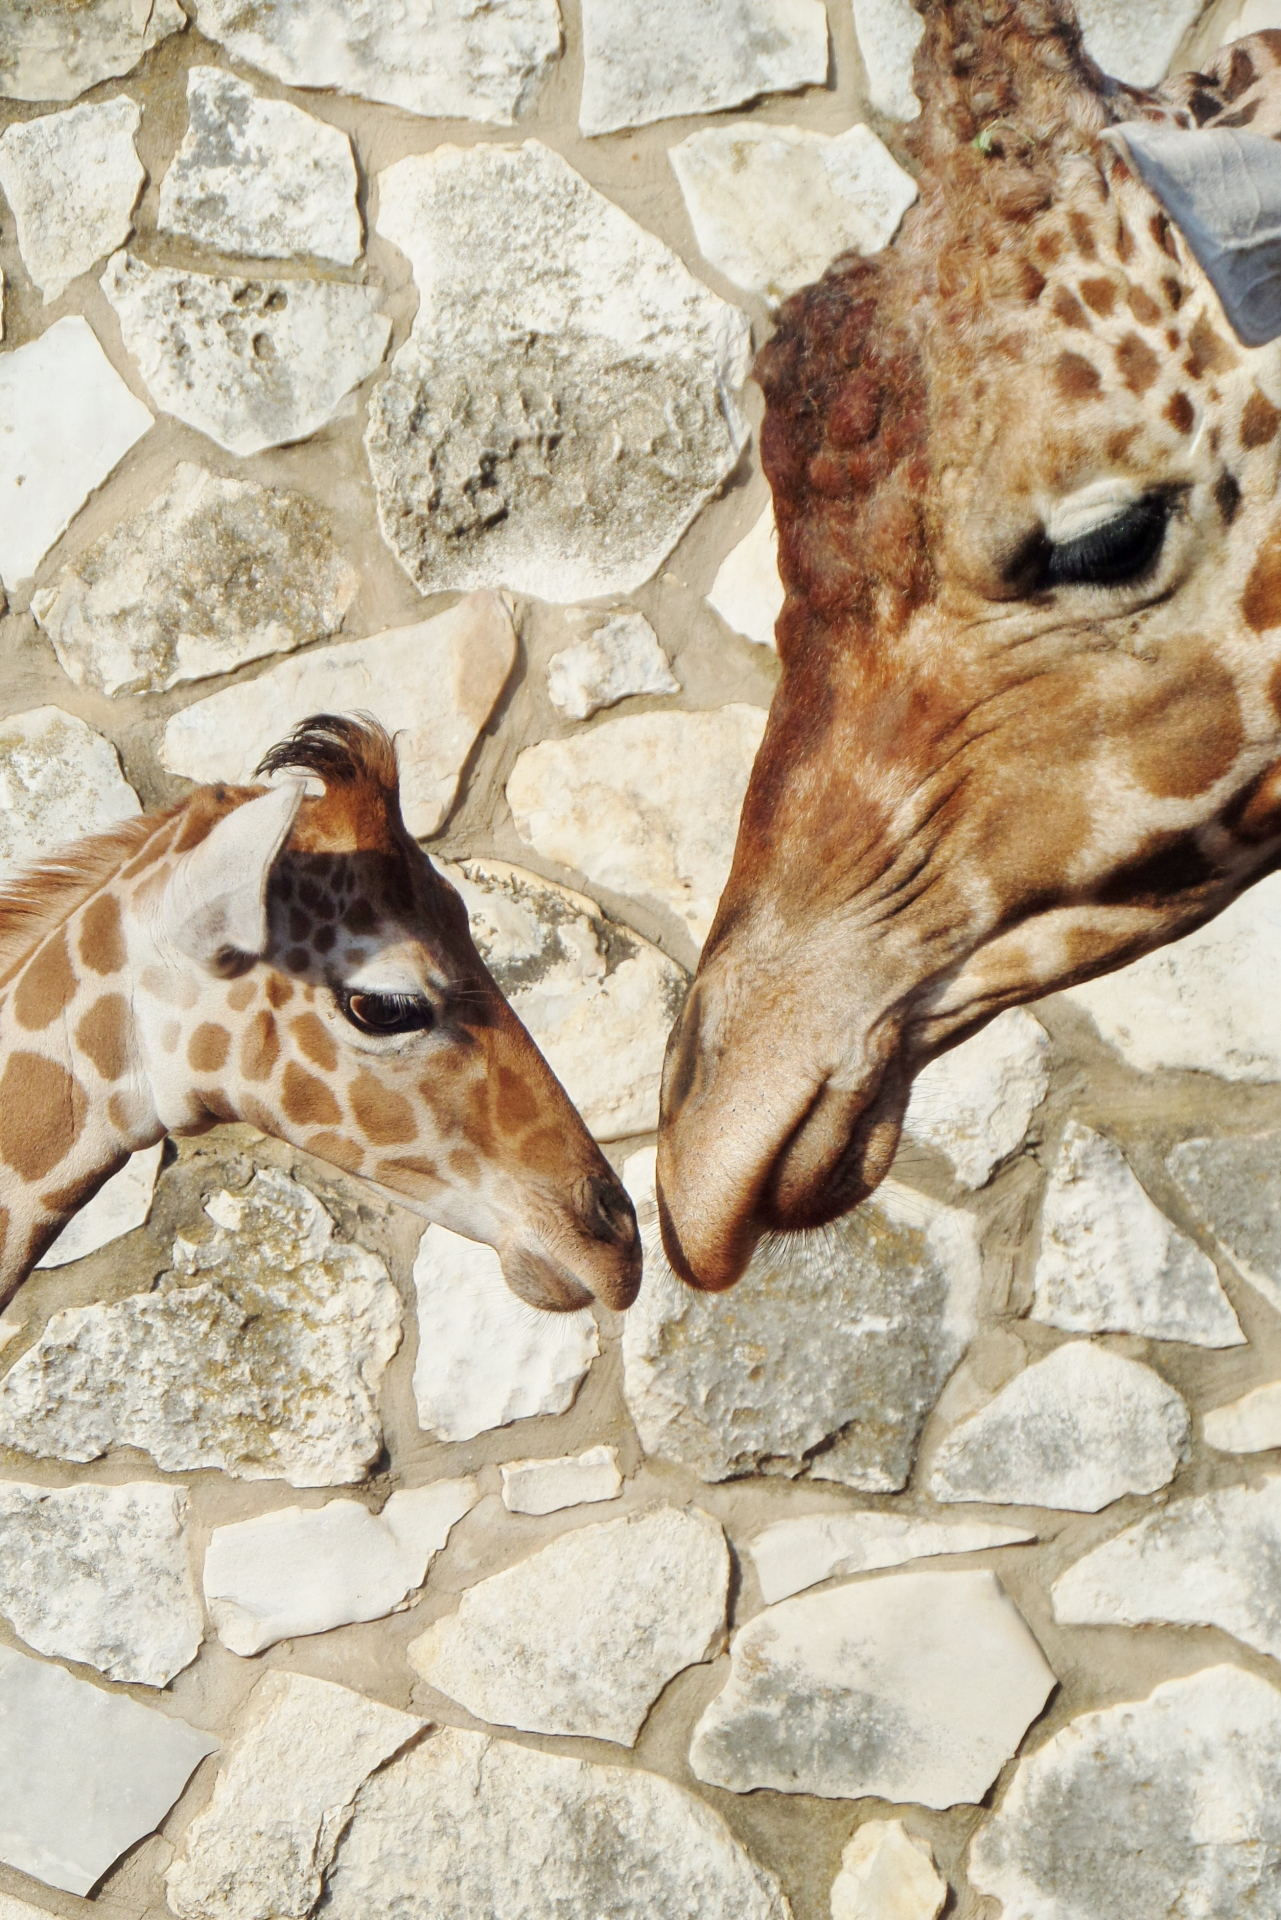 New Giraffe Births